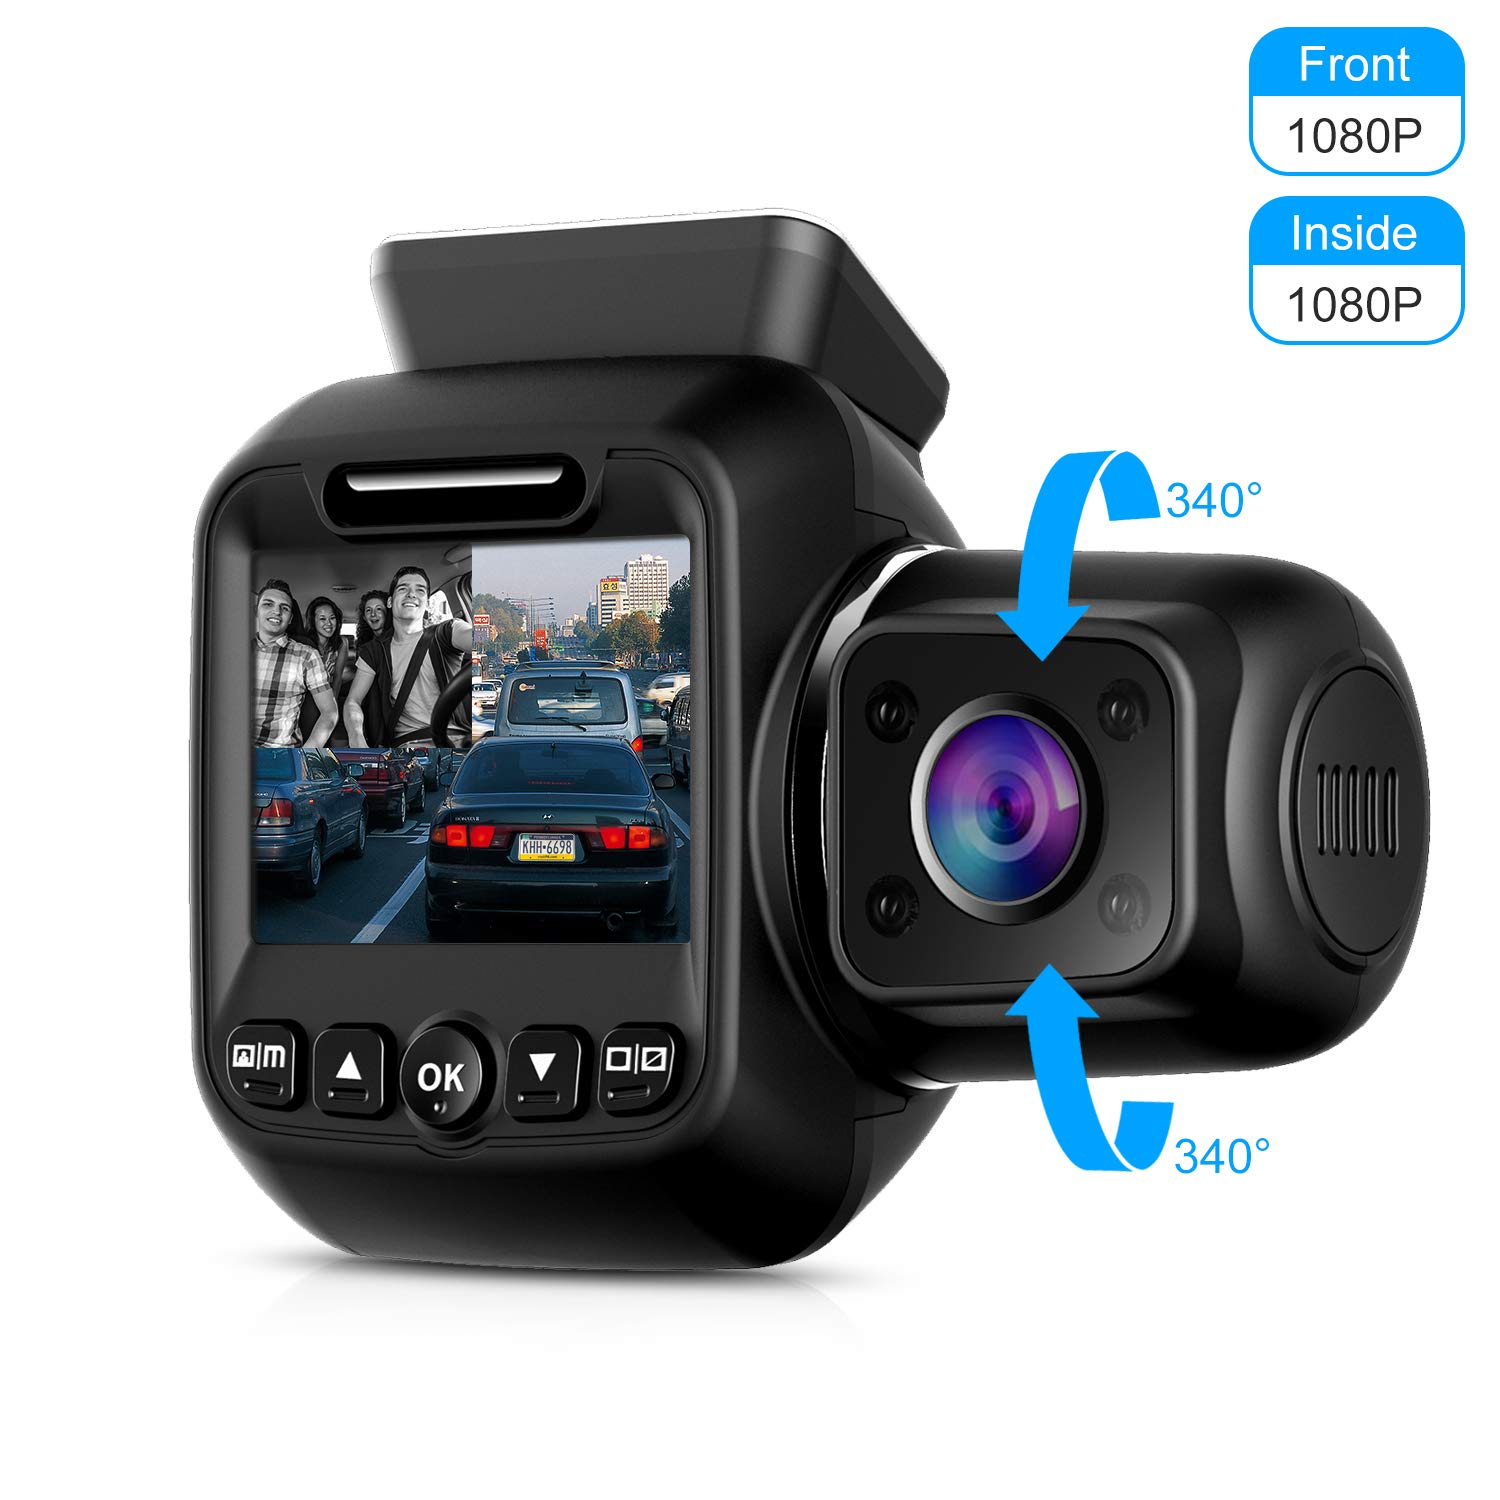 Upgraded Pruveeo P3 Dash Cam with Infrared Night Vision, Built-in GPS, WiFi, Dual 1080P Front and Inside, Dash Camera for Cars Uber Lyft Truck Taxi